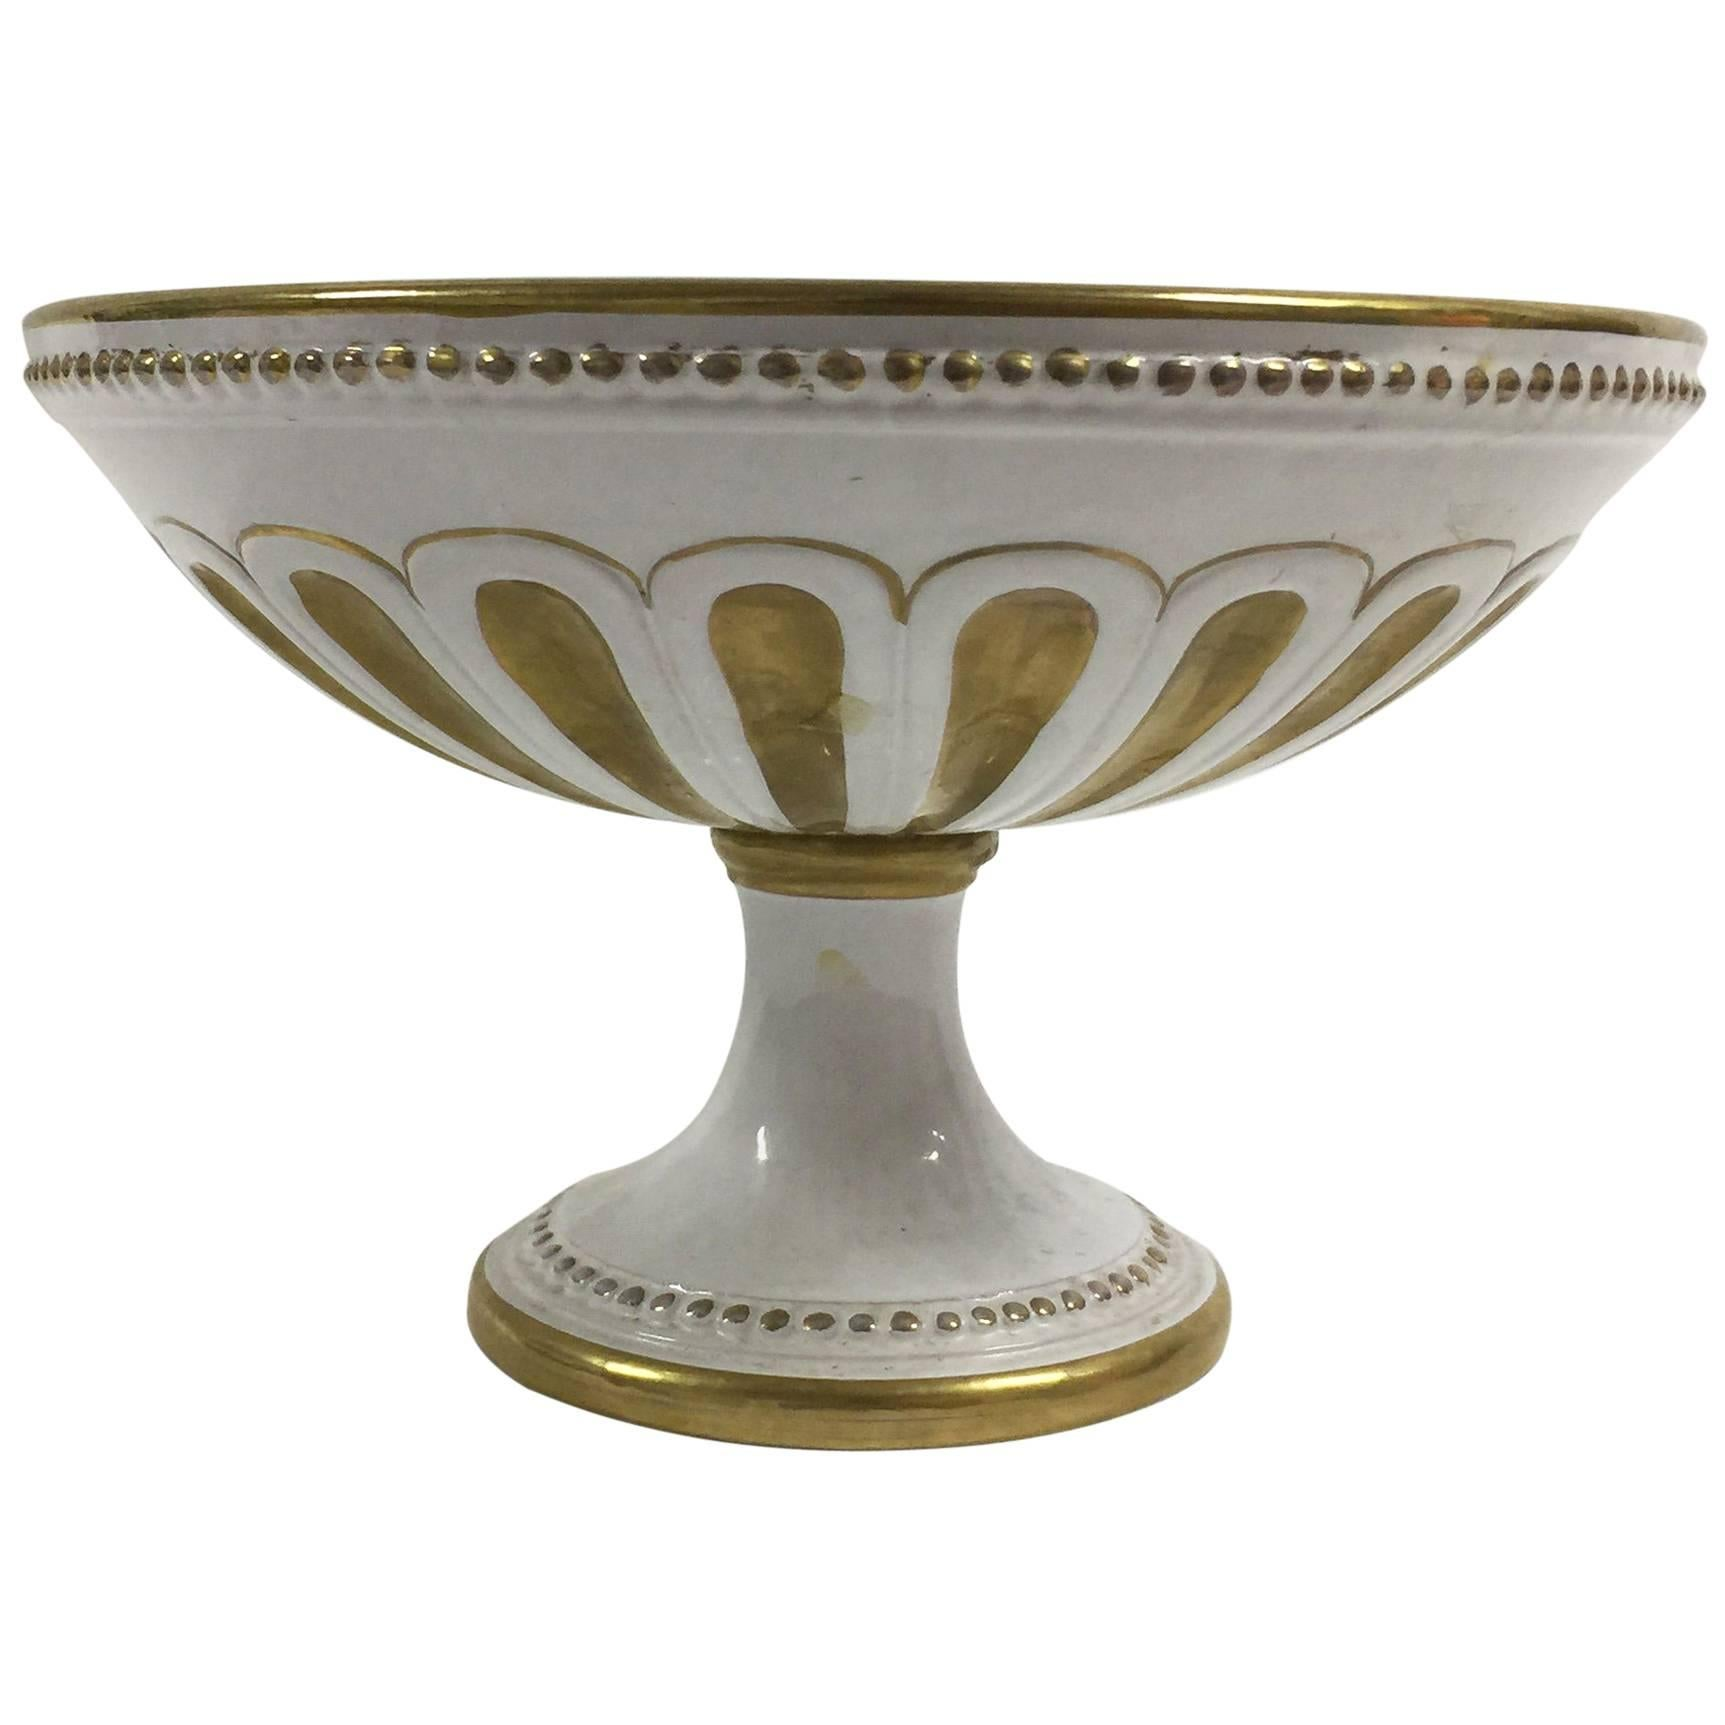 White Porcelain and Gold Centrepiece Footed Bowl by Ugo Zaccagnini